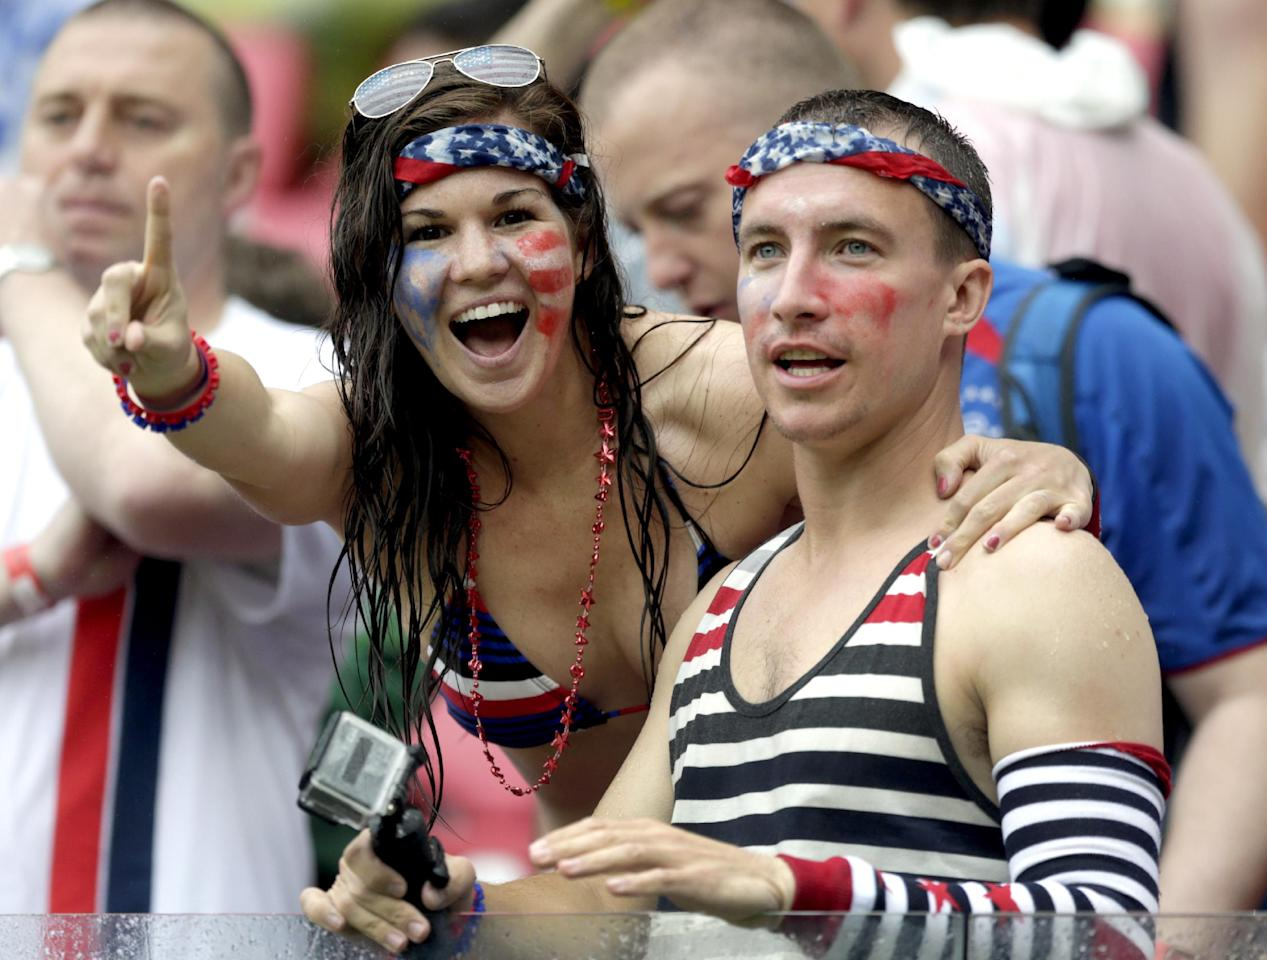 USA supporters cheer their national team during the group G World Cup soccer match between the United States and Germany at the Arena Pernambuco in Recife, Brazil, Thursday, June 26, 2014. (AP Photo/Julio Cortez)